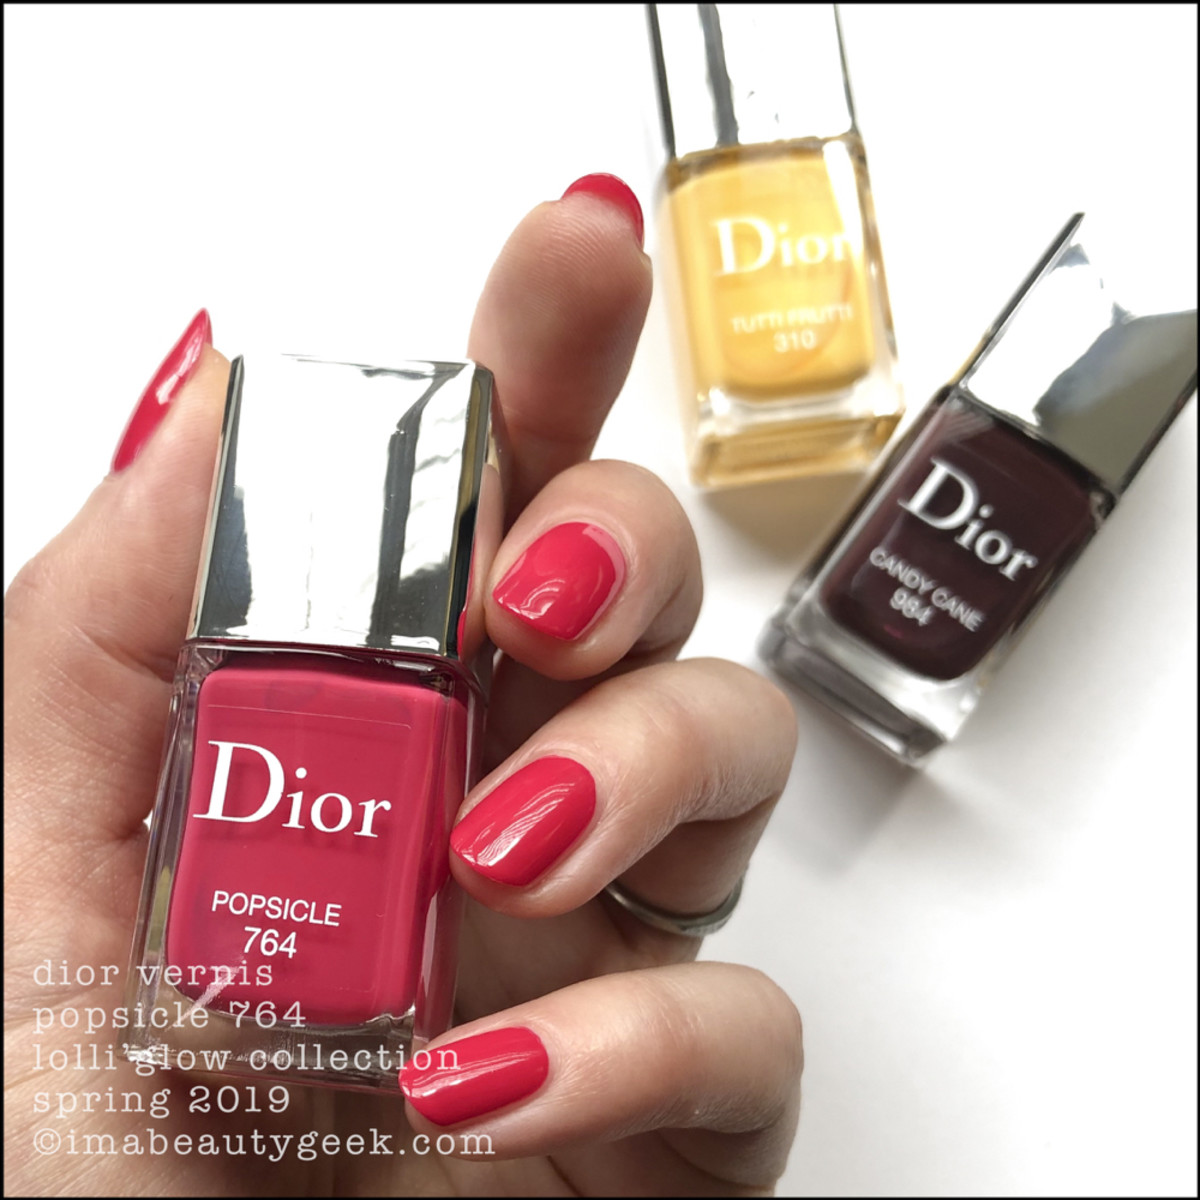 Dior Popsicle 764 - Dior Lolli'Glow Swatches Spring 2019